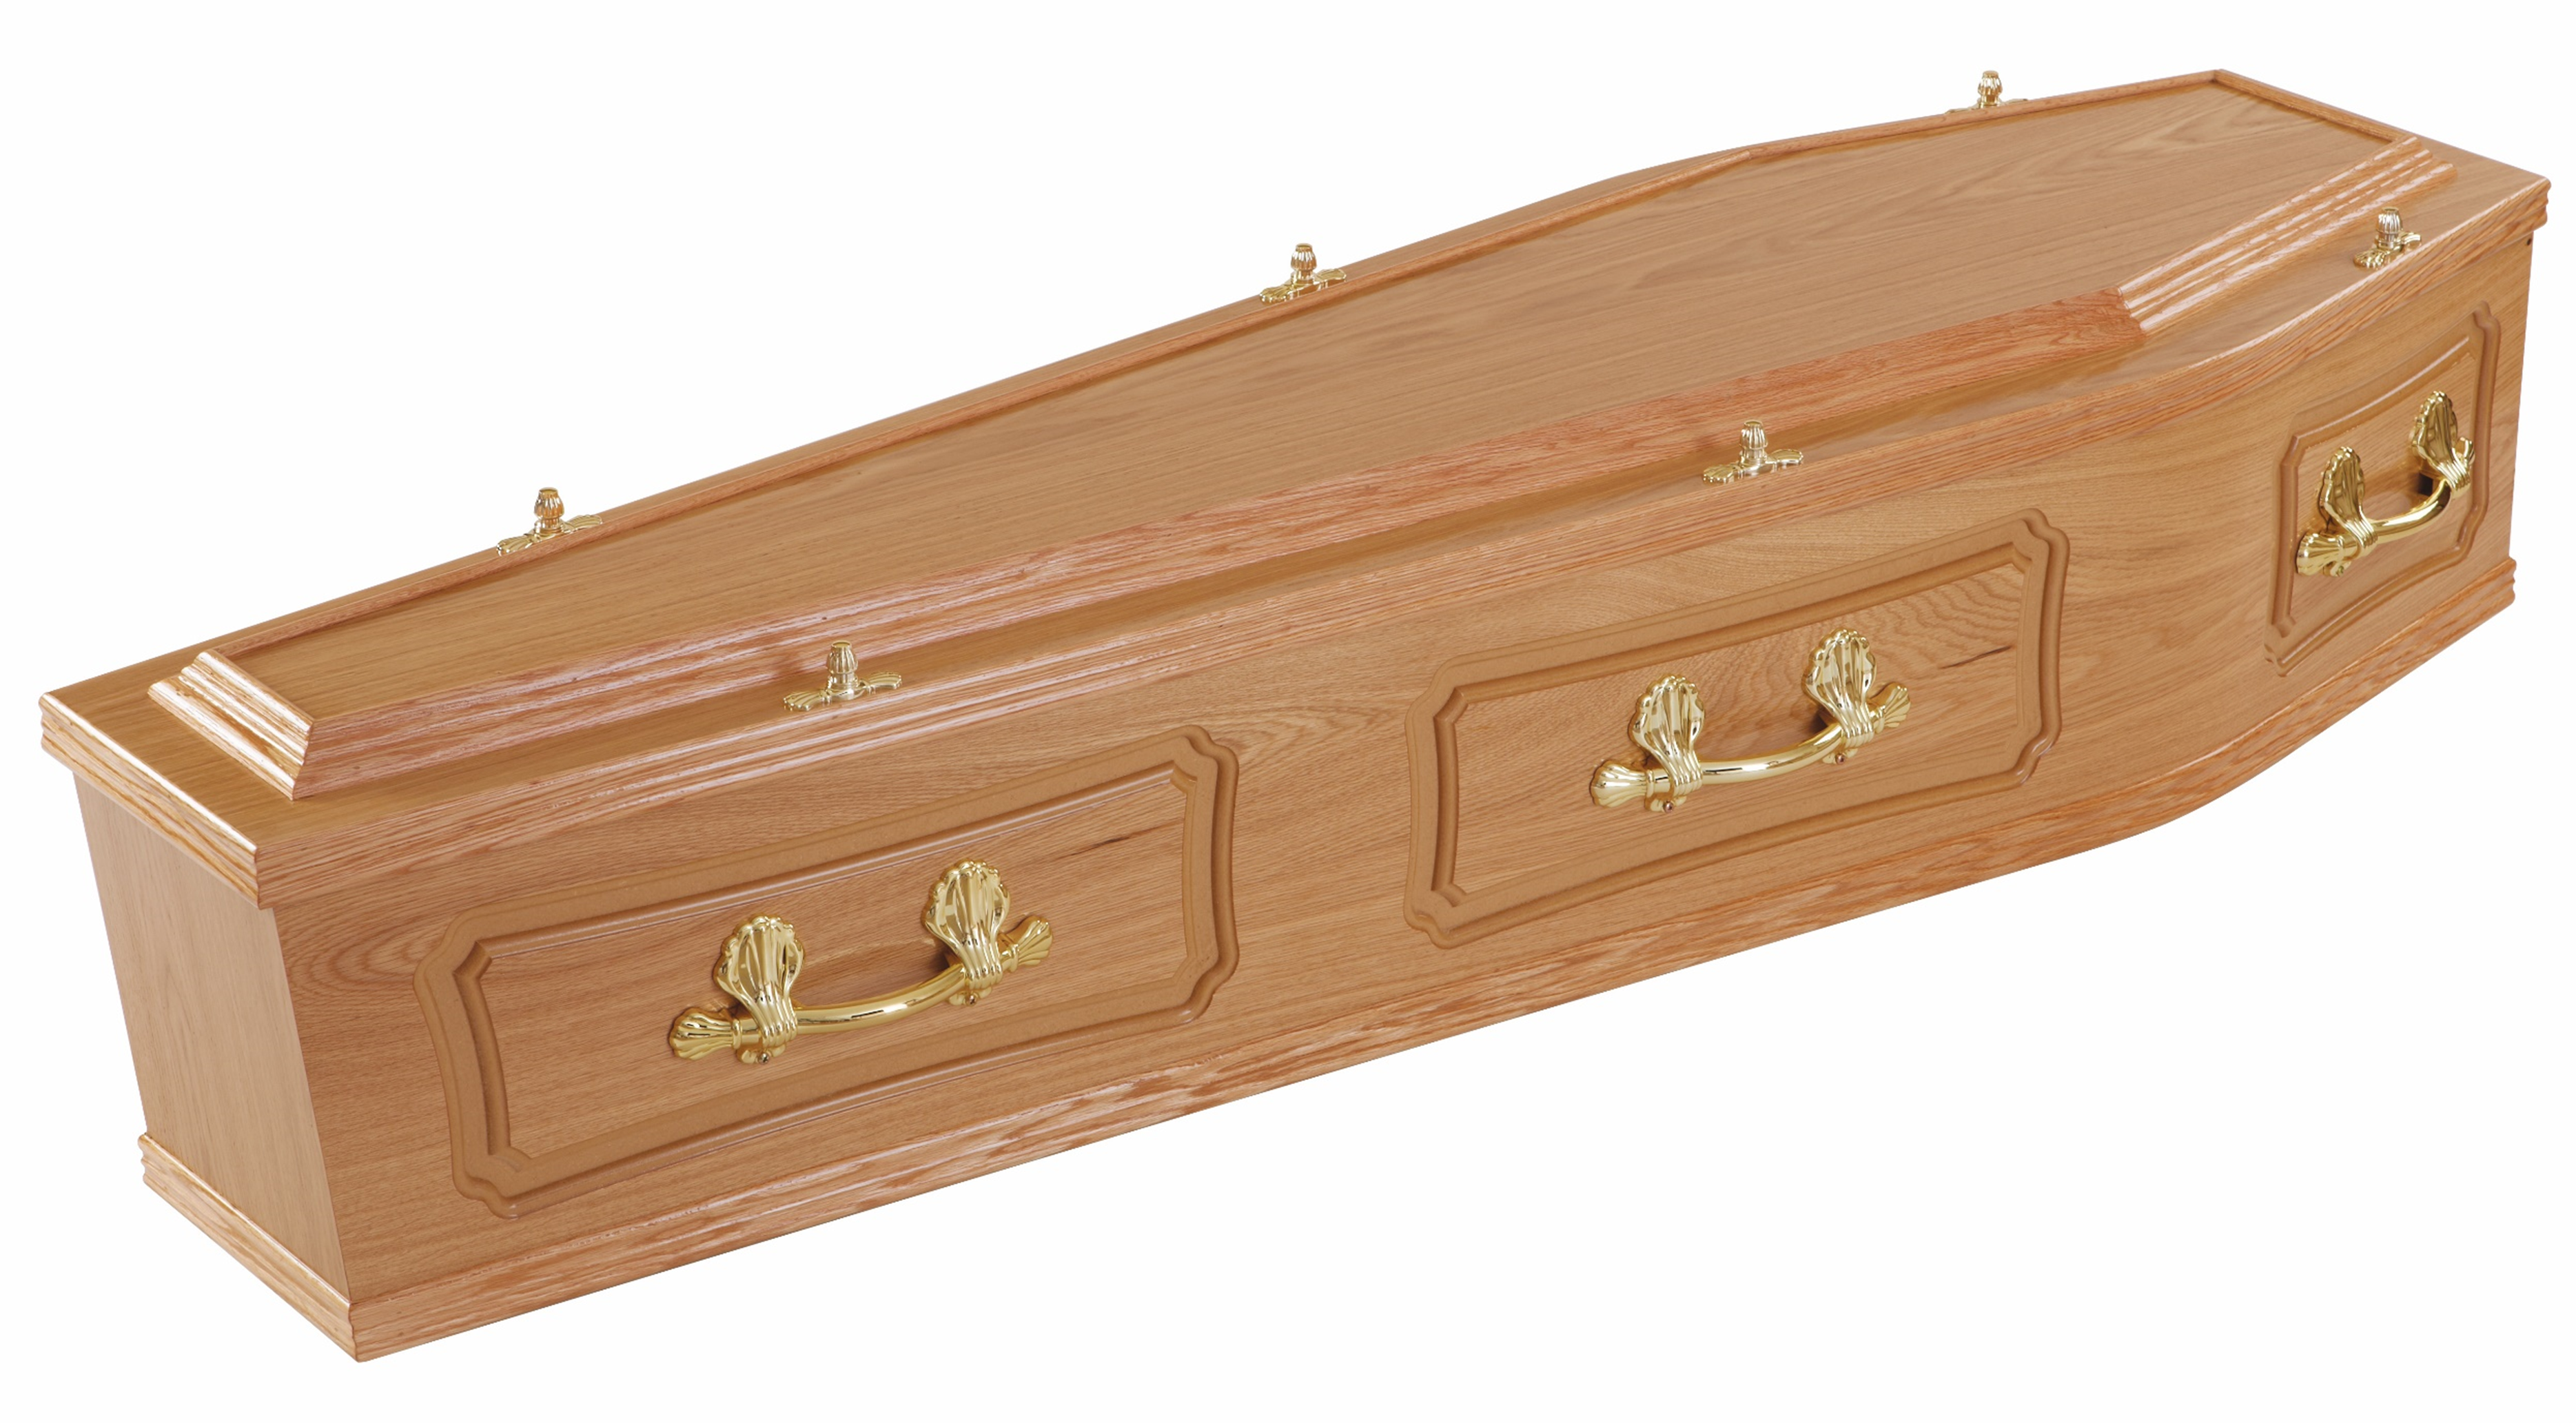 A high quality hand finished veneered Oak Coffin with raised top, panelled sides and traditional fittings.